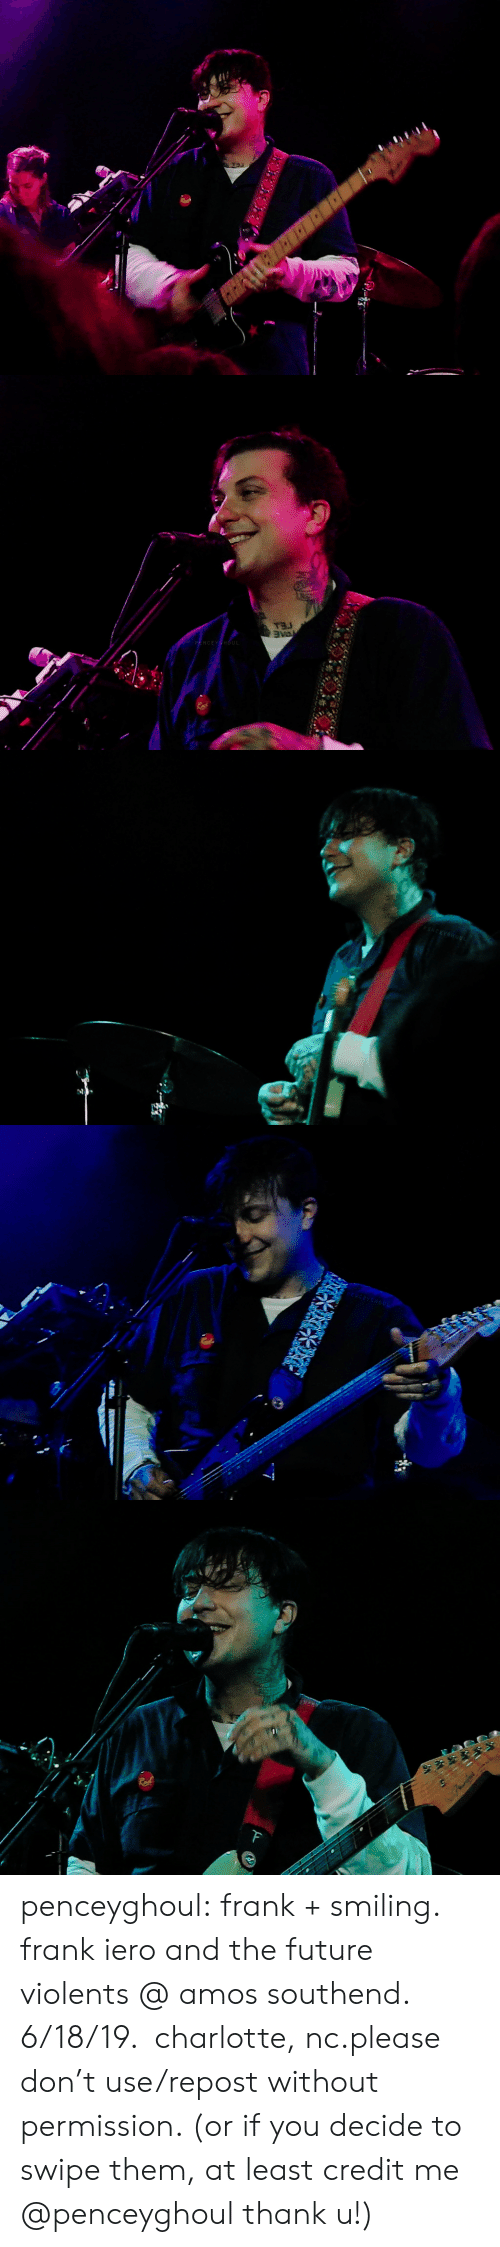 Please Don: PENCEYGHO   DAE  PENCEYHOUL   PENCEYGH oUI   GHOUL   ENCEYGHOUt  F penceyghoul:  frank + smiling.  frank iero and the future violents @ amos southend.  6/18/19.  charlotte, nc.please don't use/repost without permission. (or if you decide to swipe them, at least credit me @penceyghoul​ thank u!)